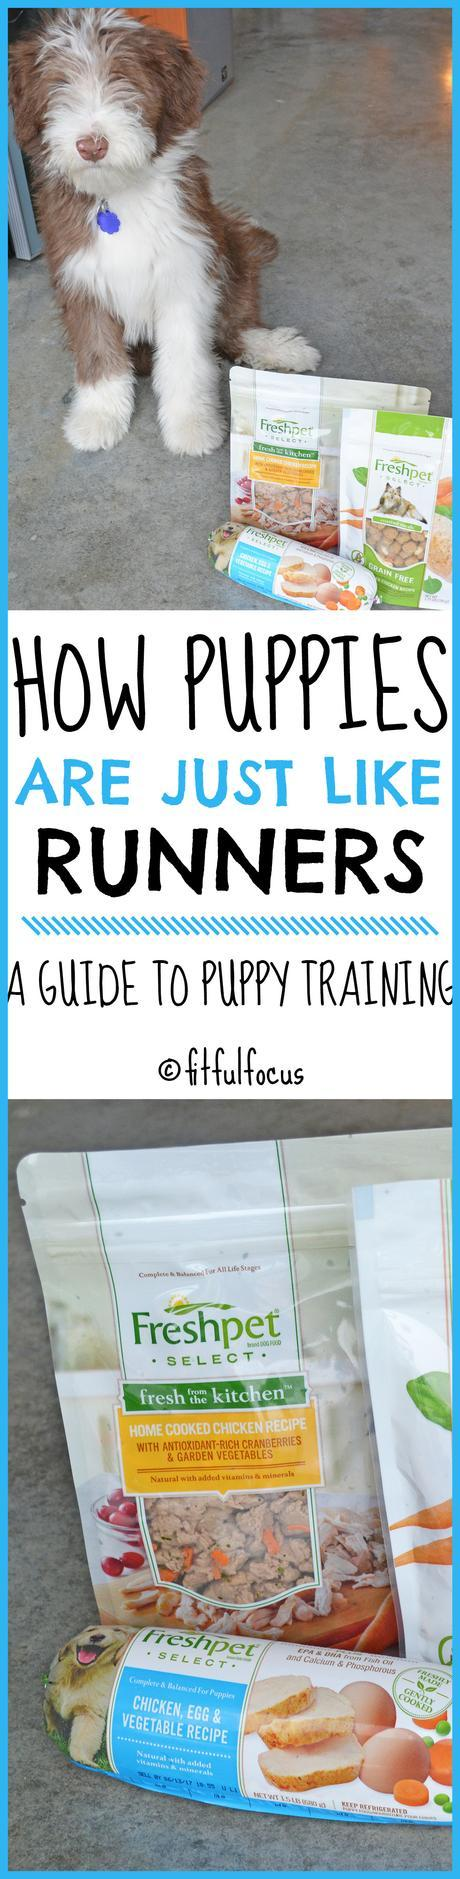 How Puppies Are Just Like Runners: A Guide To Puppy Training